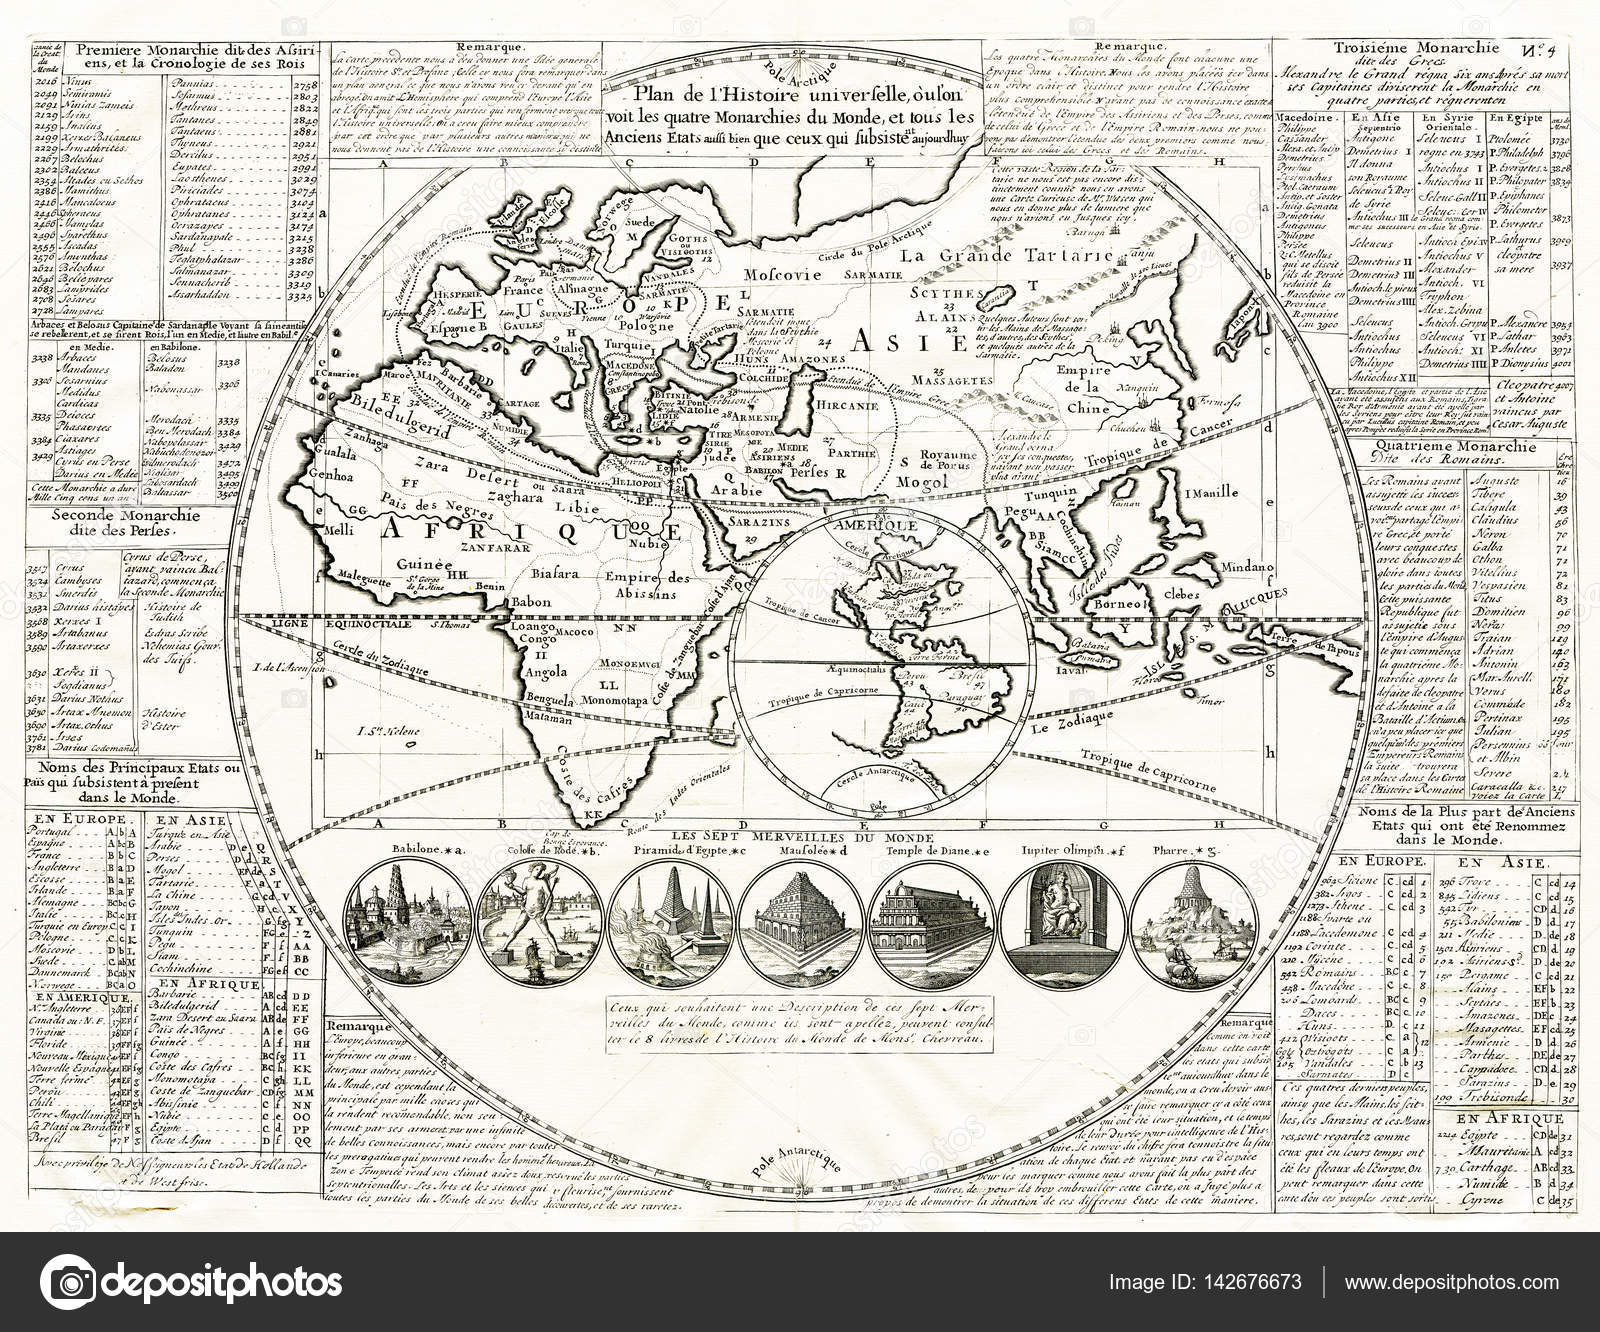 World map seven wonders of the ancient world 1707 stock photo world map seven wonders of the ancient world 1707 stock photo gumiabroncs Images